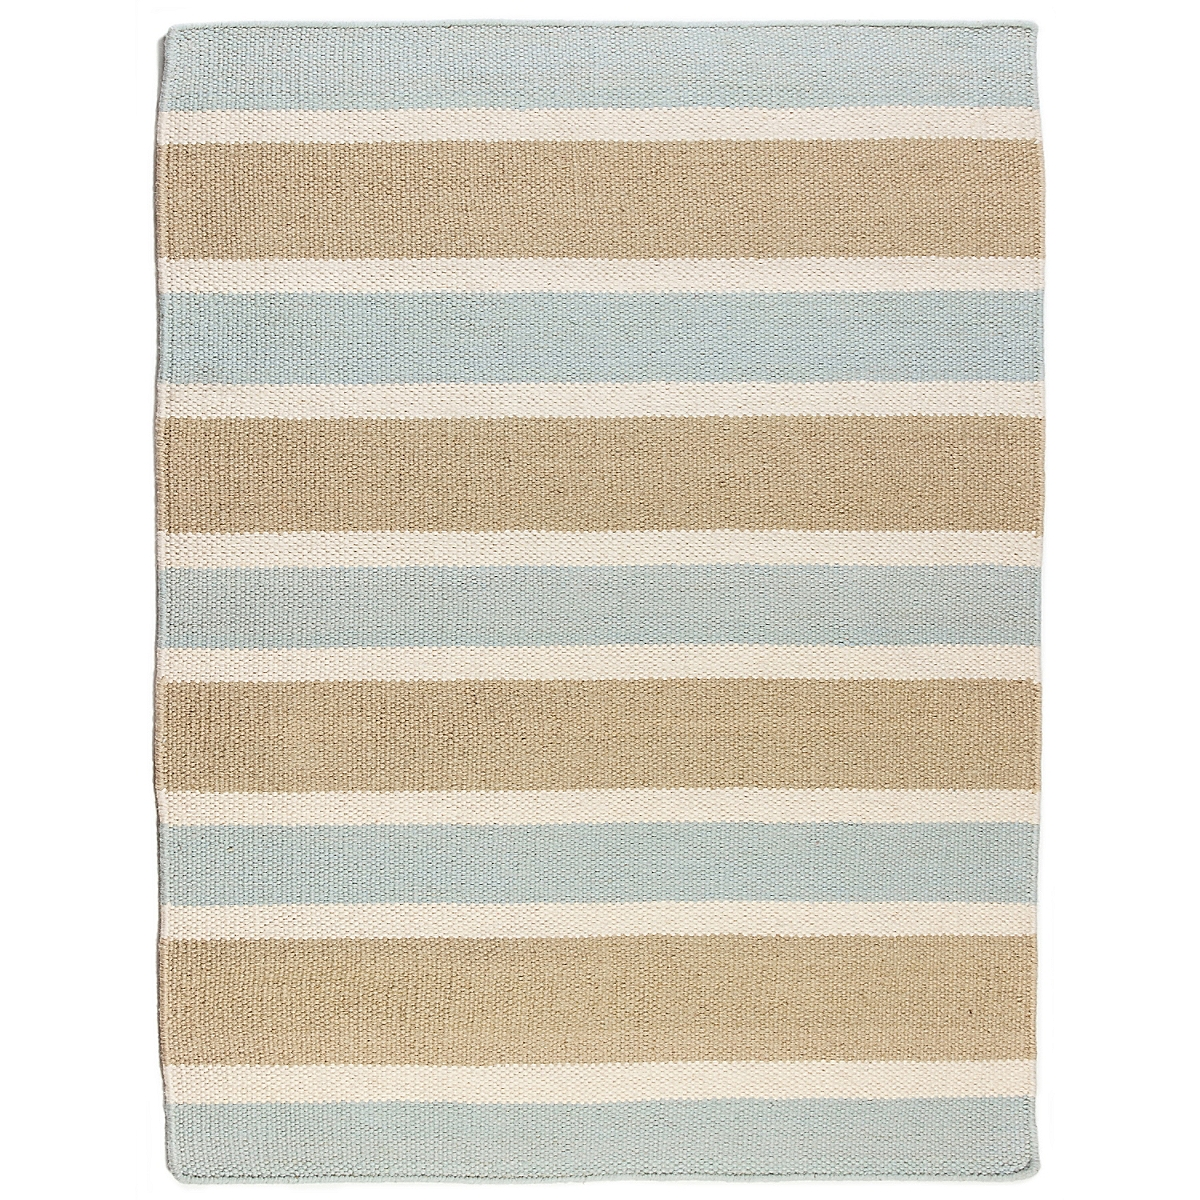 Tybee Island Wool Berber Striped Rug